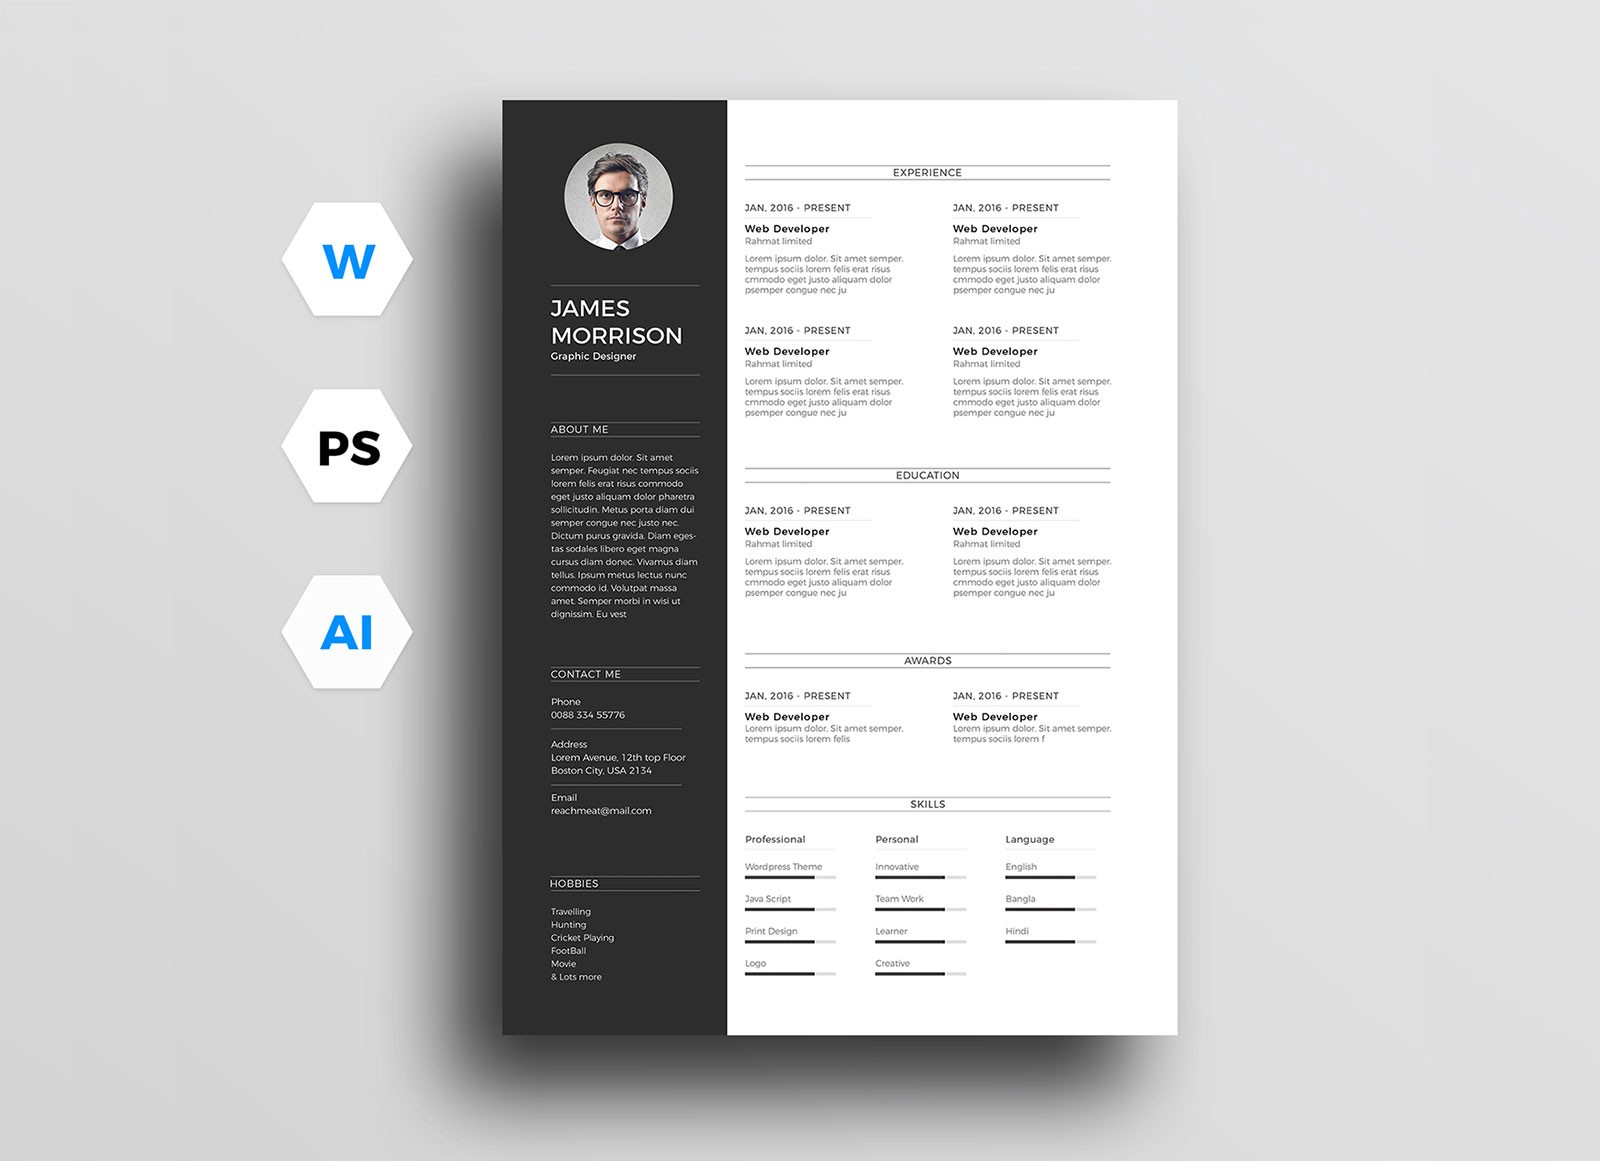 resume template how to create a resume on word  Free Minimal CV Resume Template In Word, Ai & PSD - Good ..